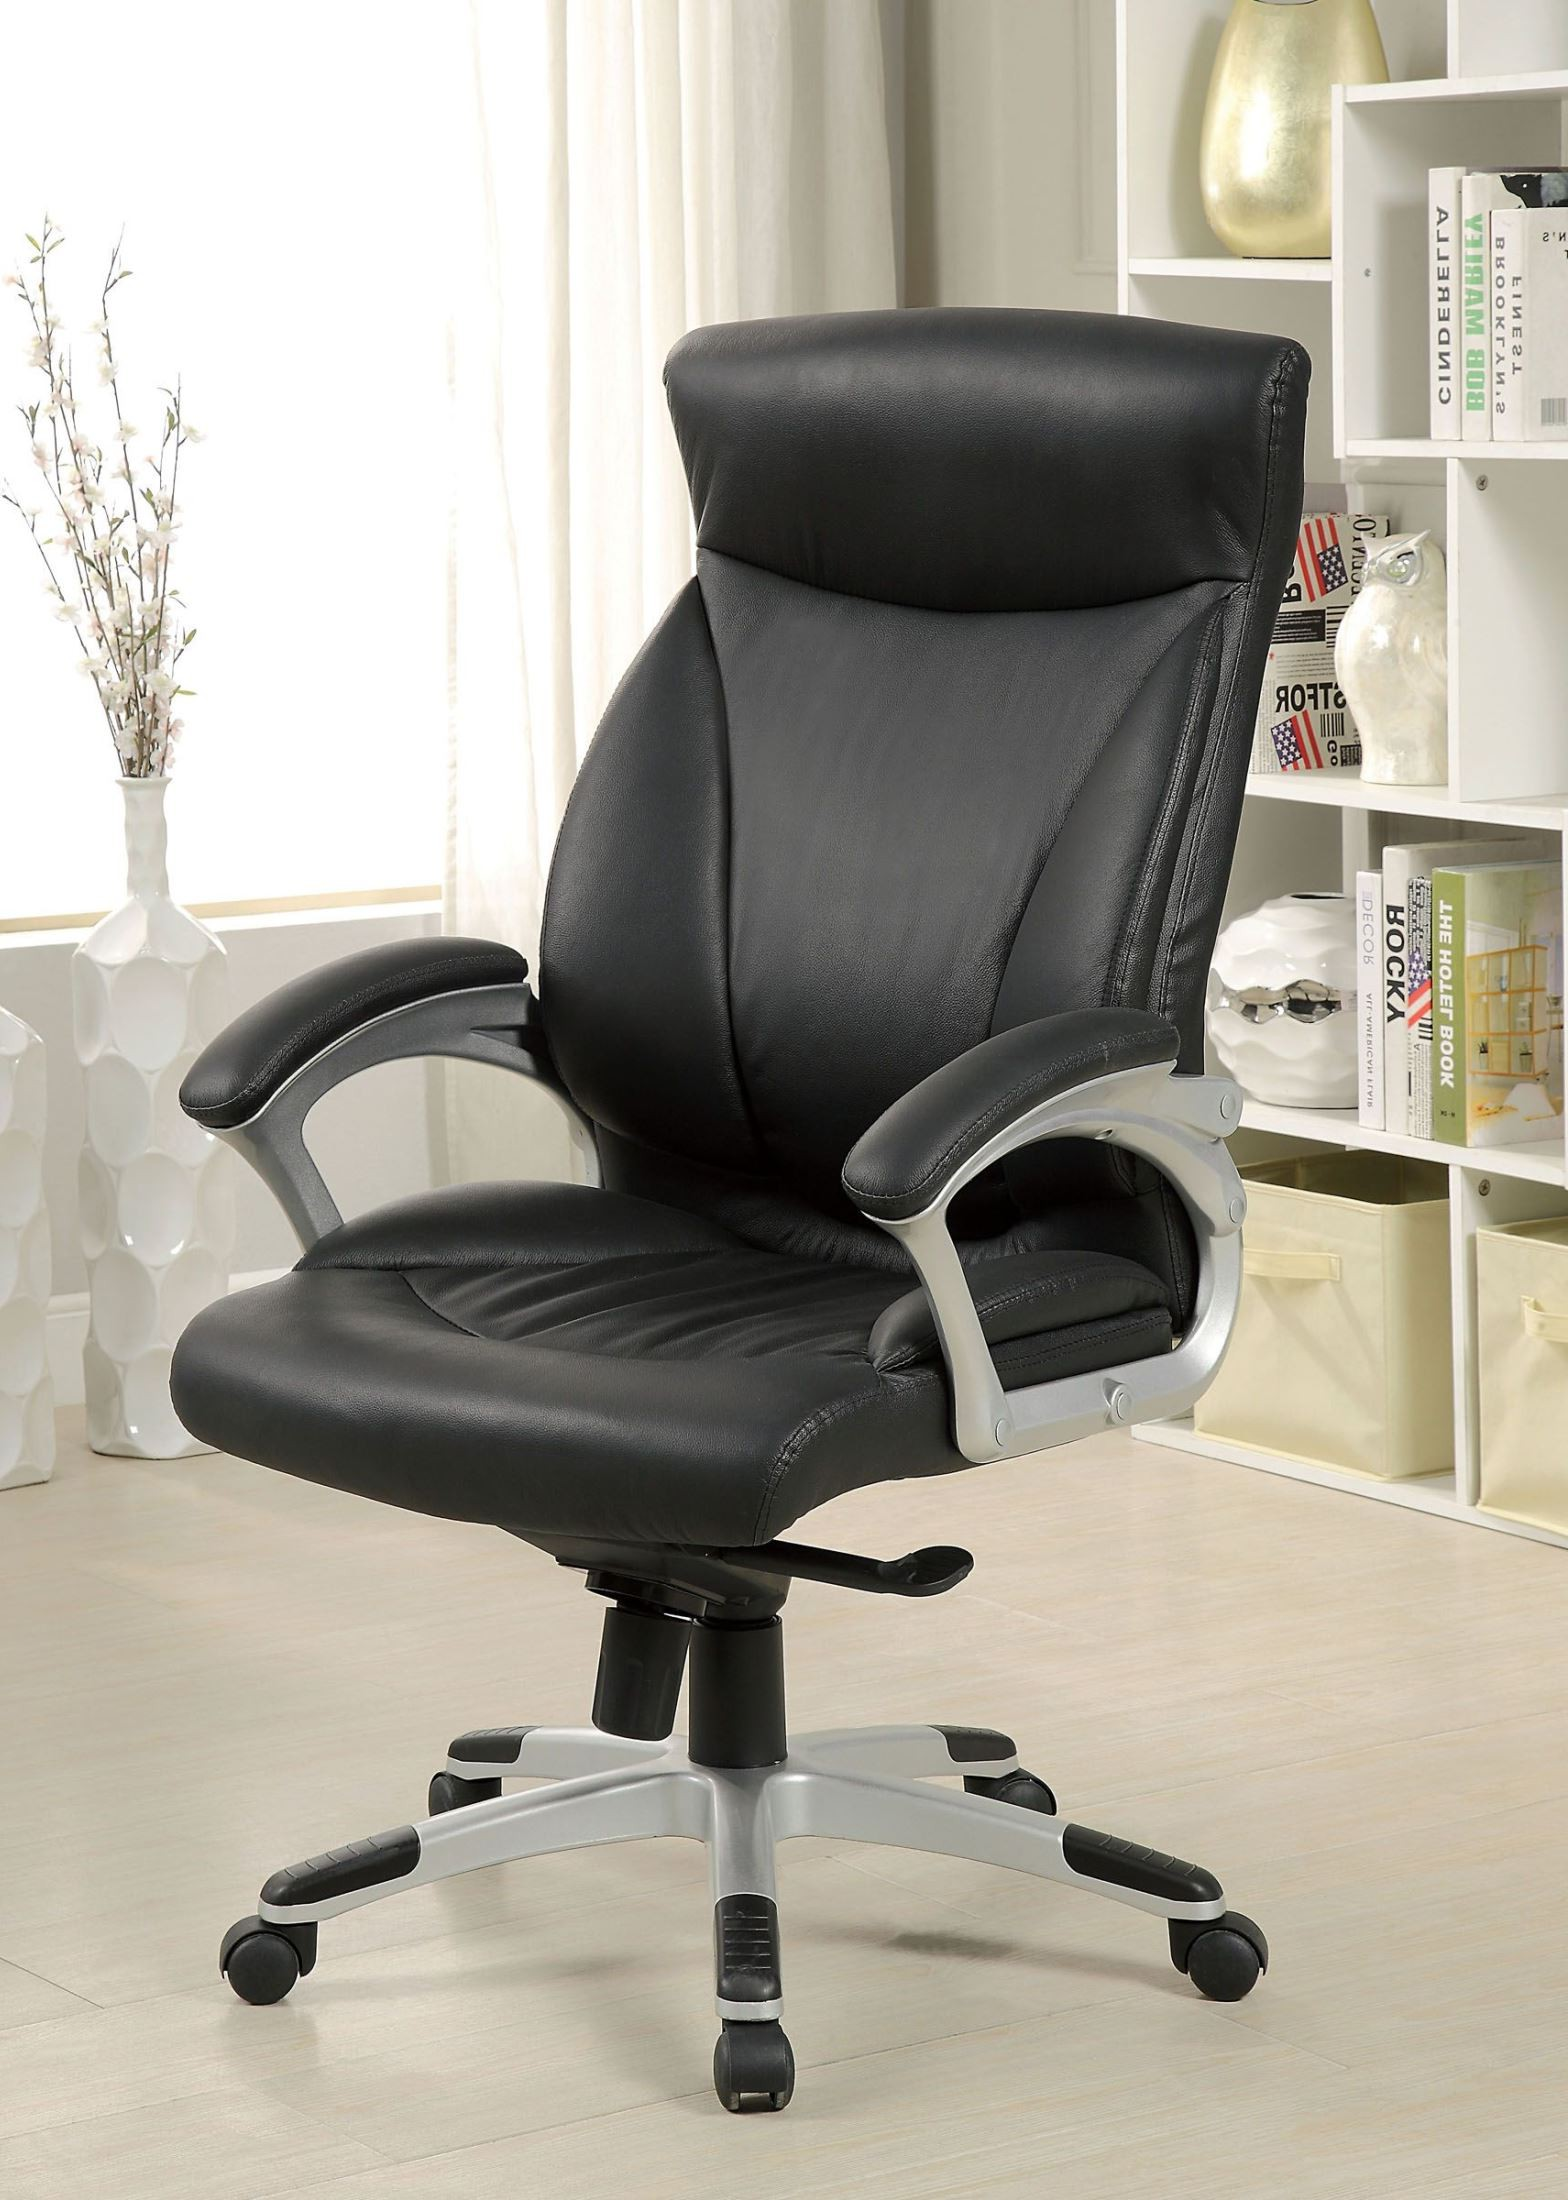 Top Grain Leather Office Chair Top Grain Leather Office Chair Furniture